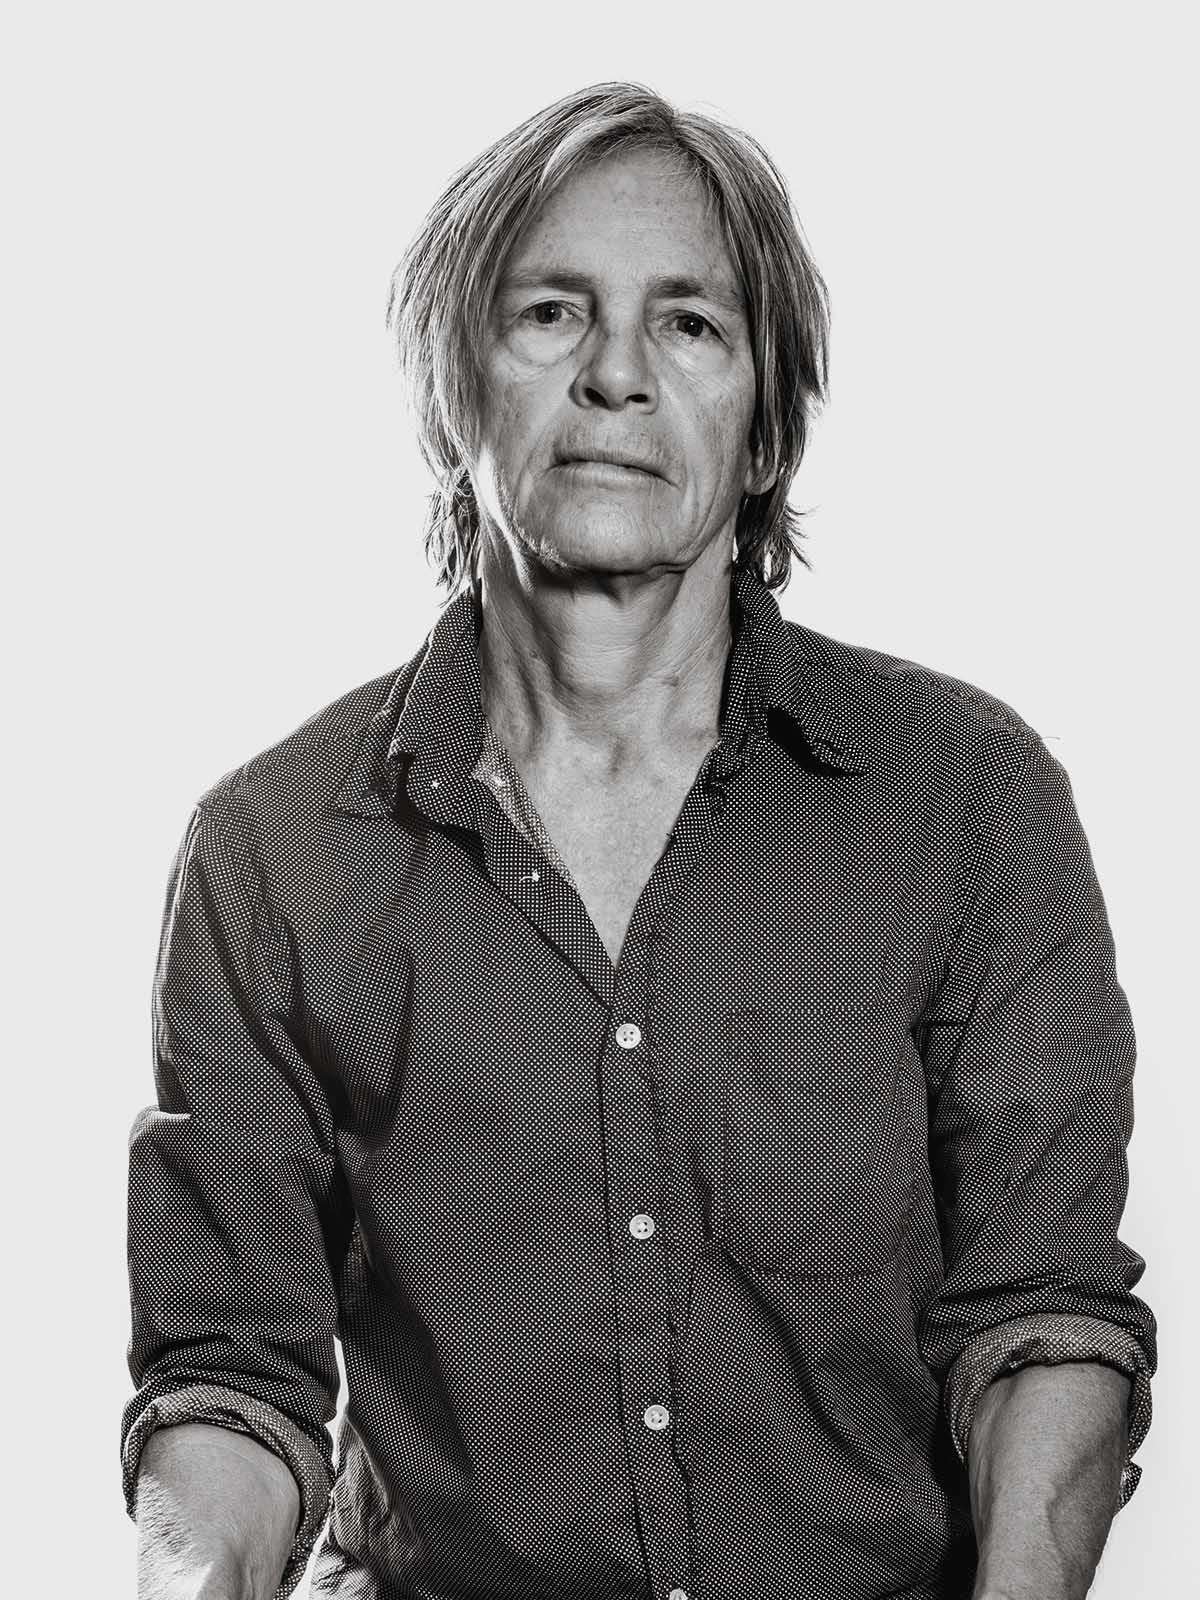 Dispatches from Eileen Myles, the greatest president we never had